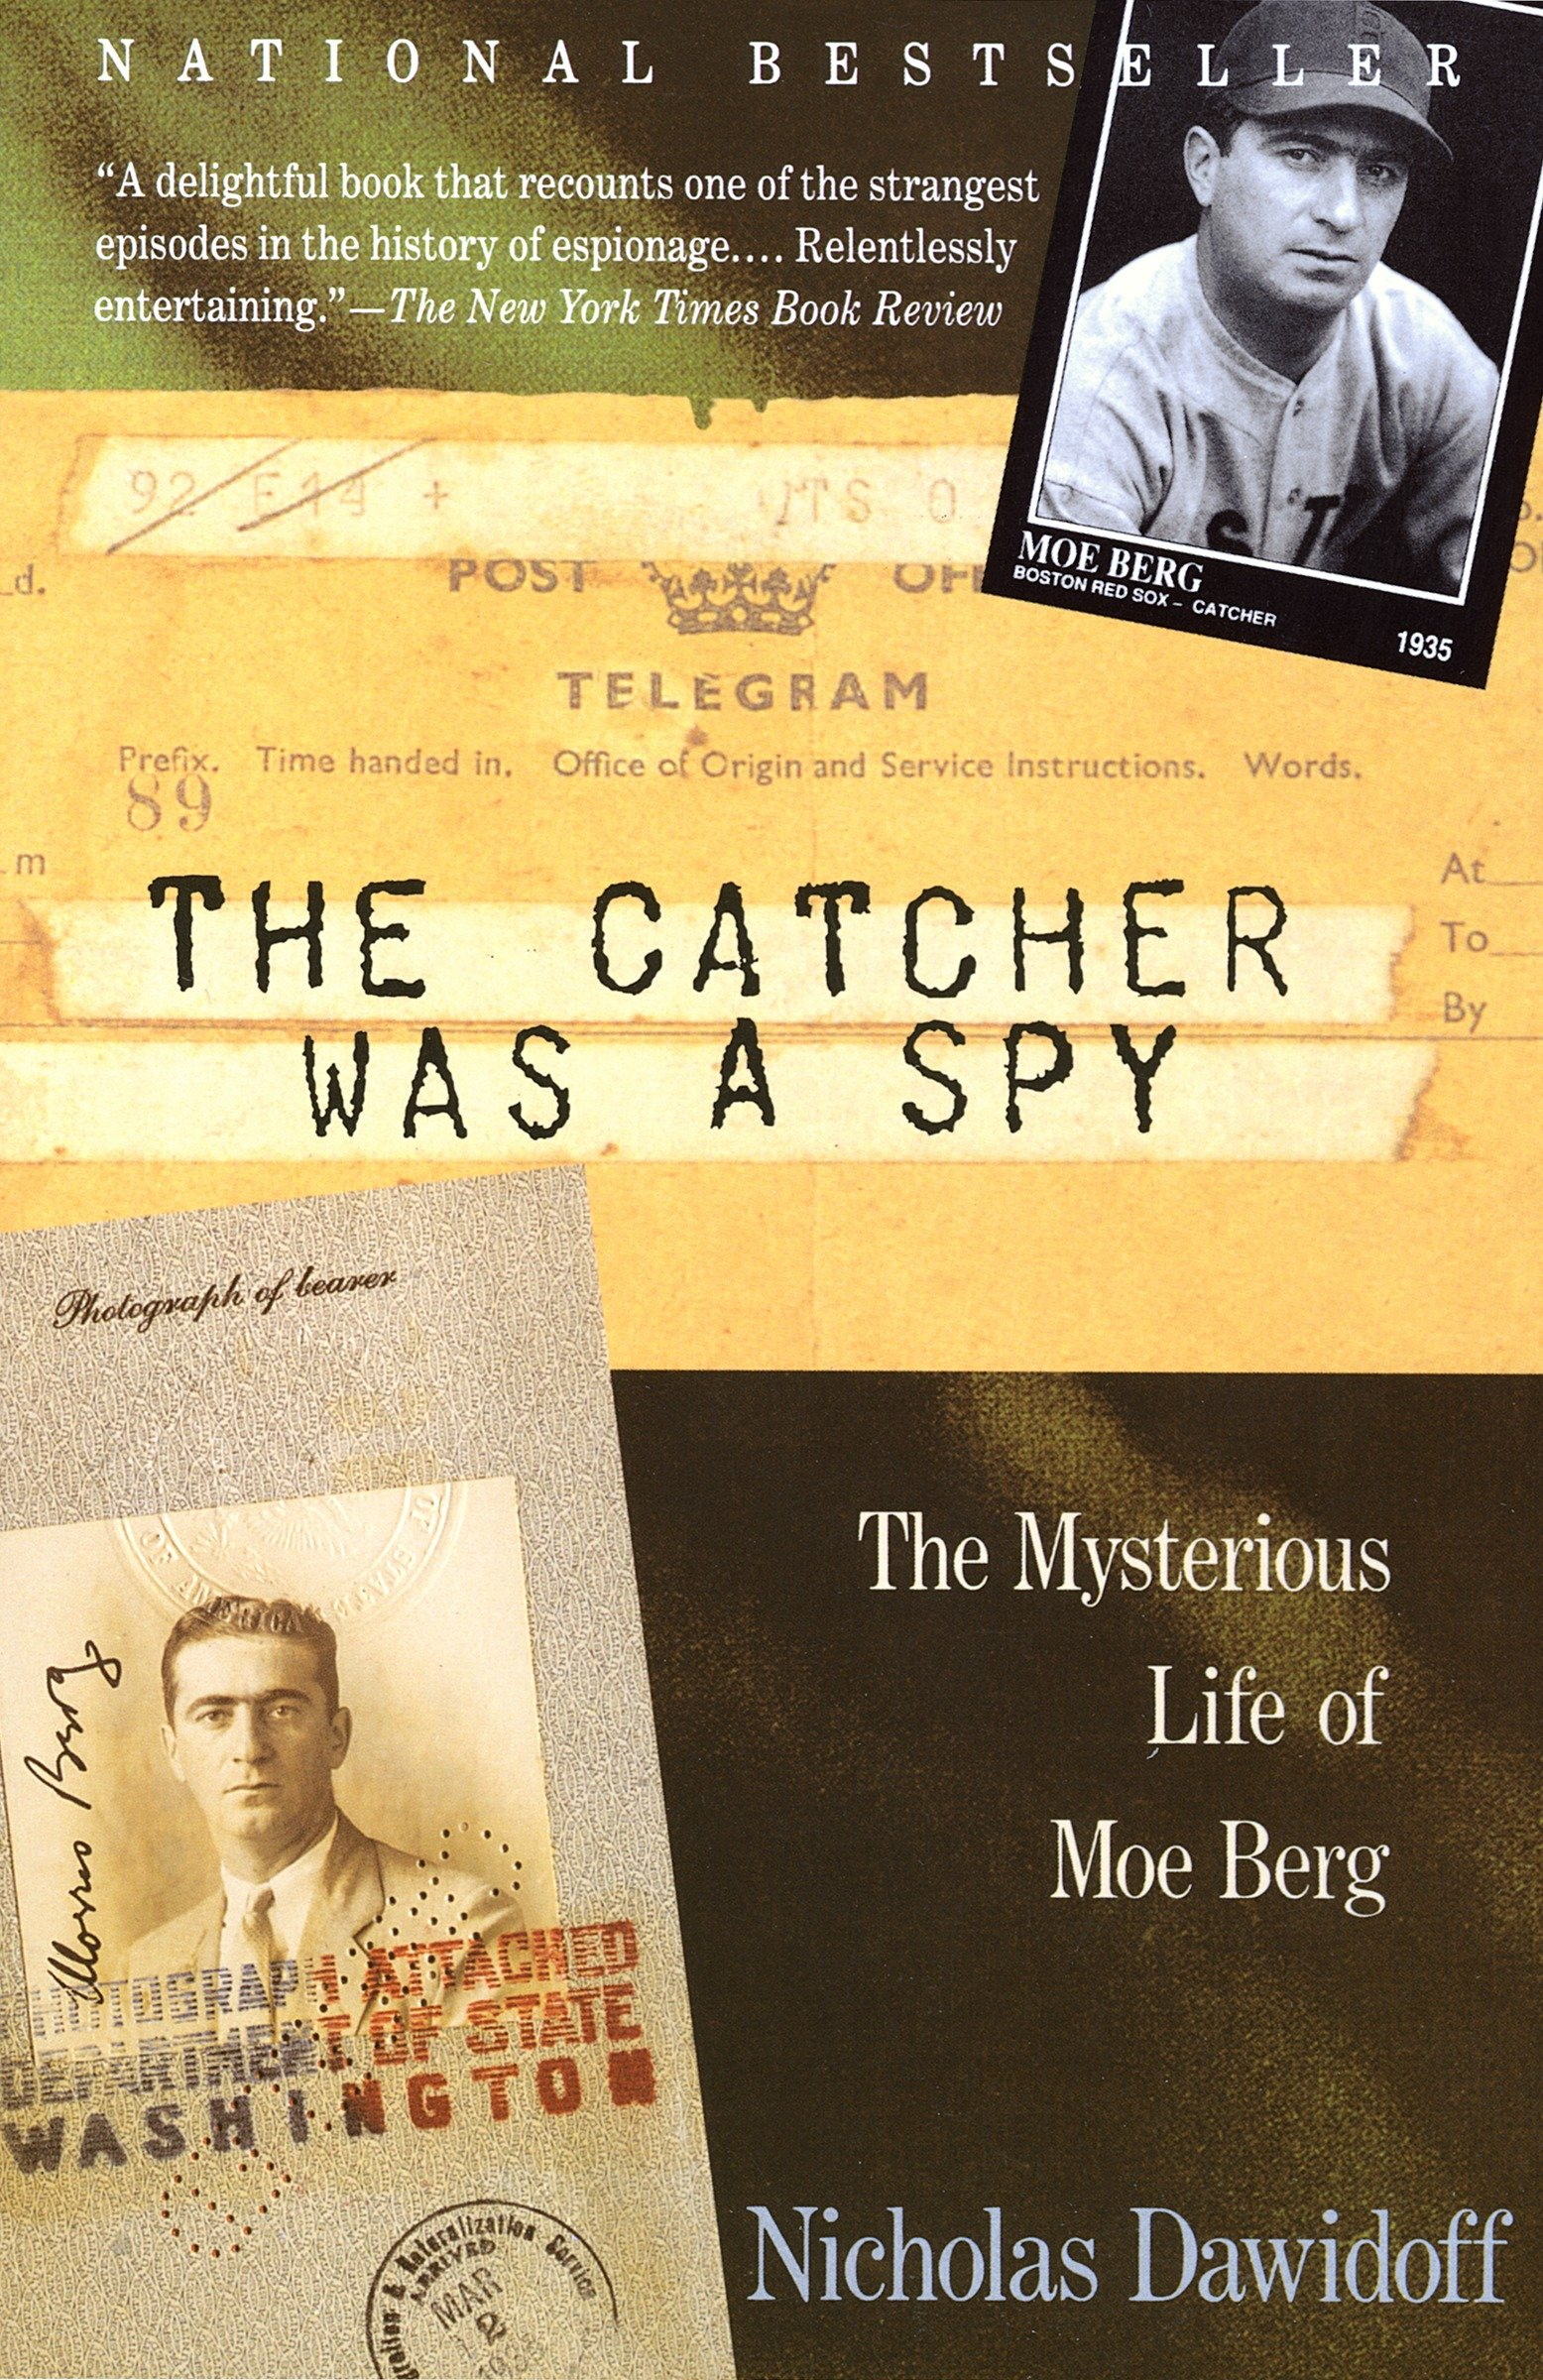 The Catcher Was a Spy The Mysterious Life of Moe Berg